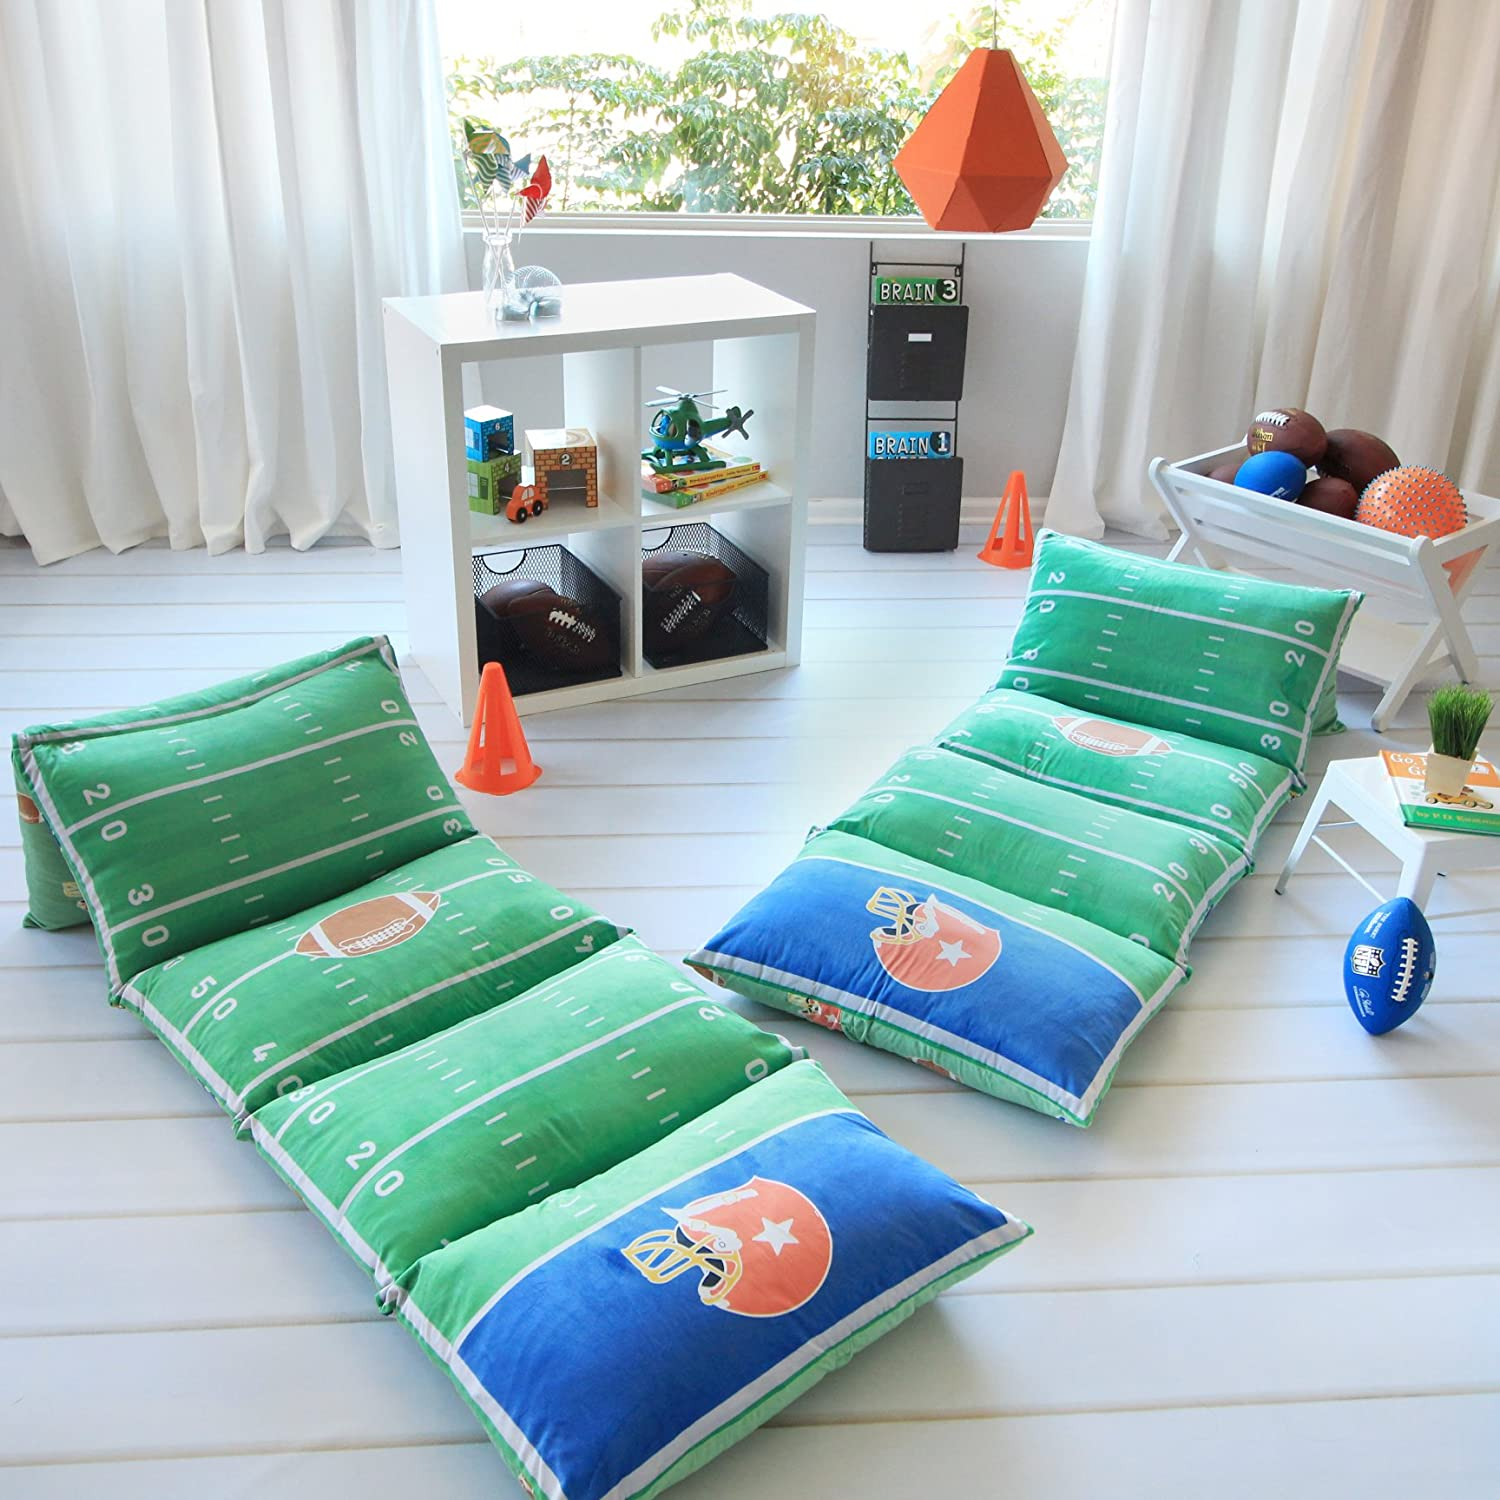 Football Themed Pillow Bed Cover Floor Pillow Lounger